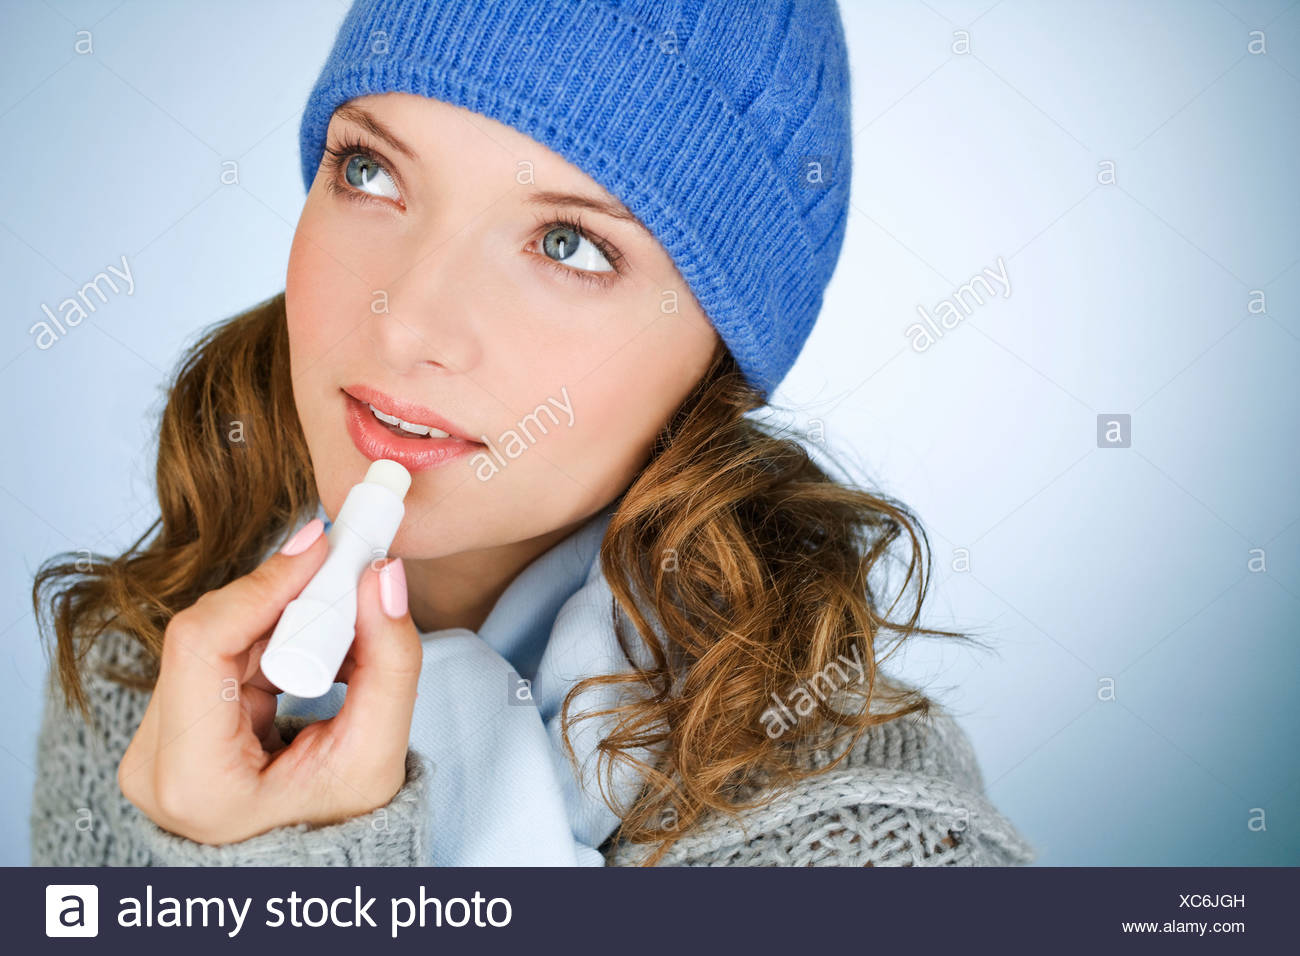 A young woman applying lip balm, in wintertime - Stock Image